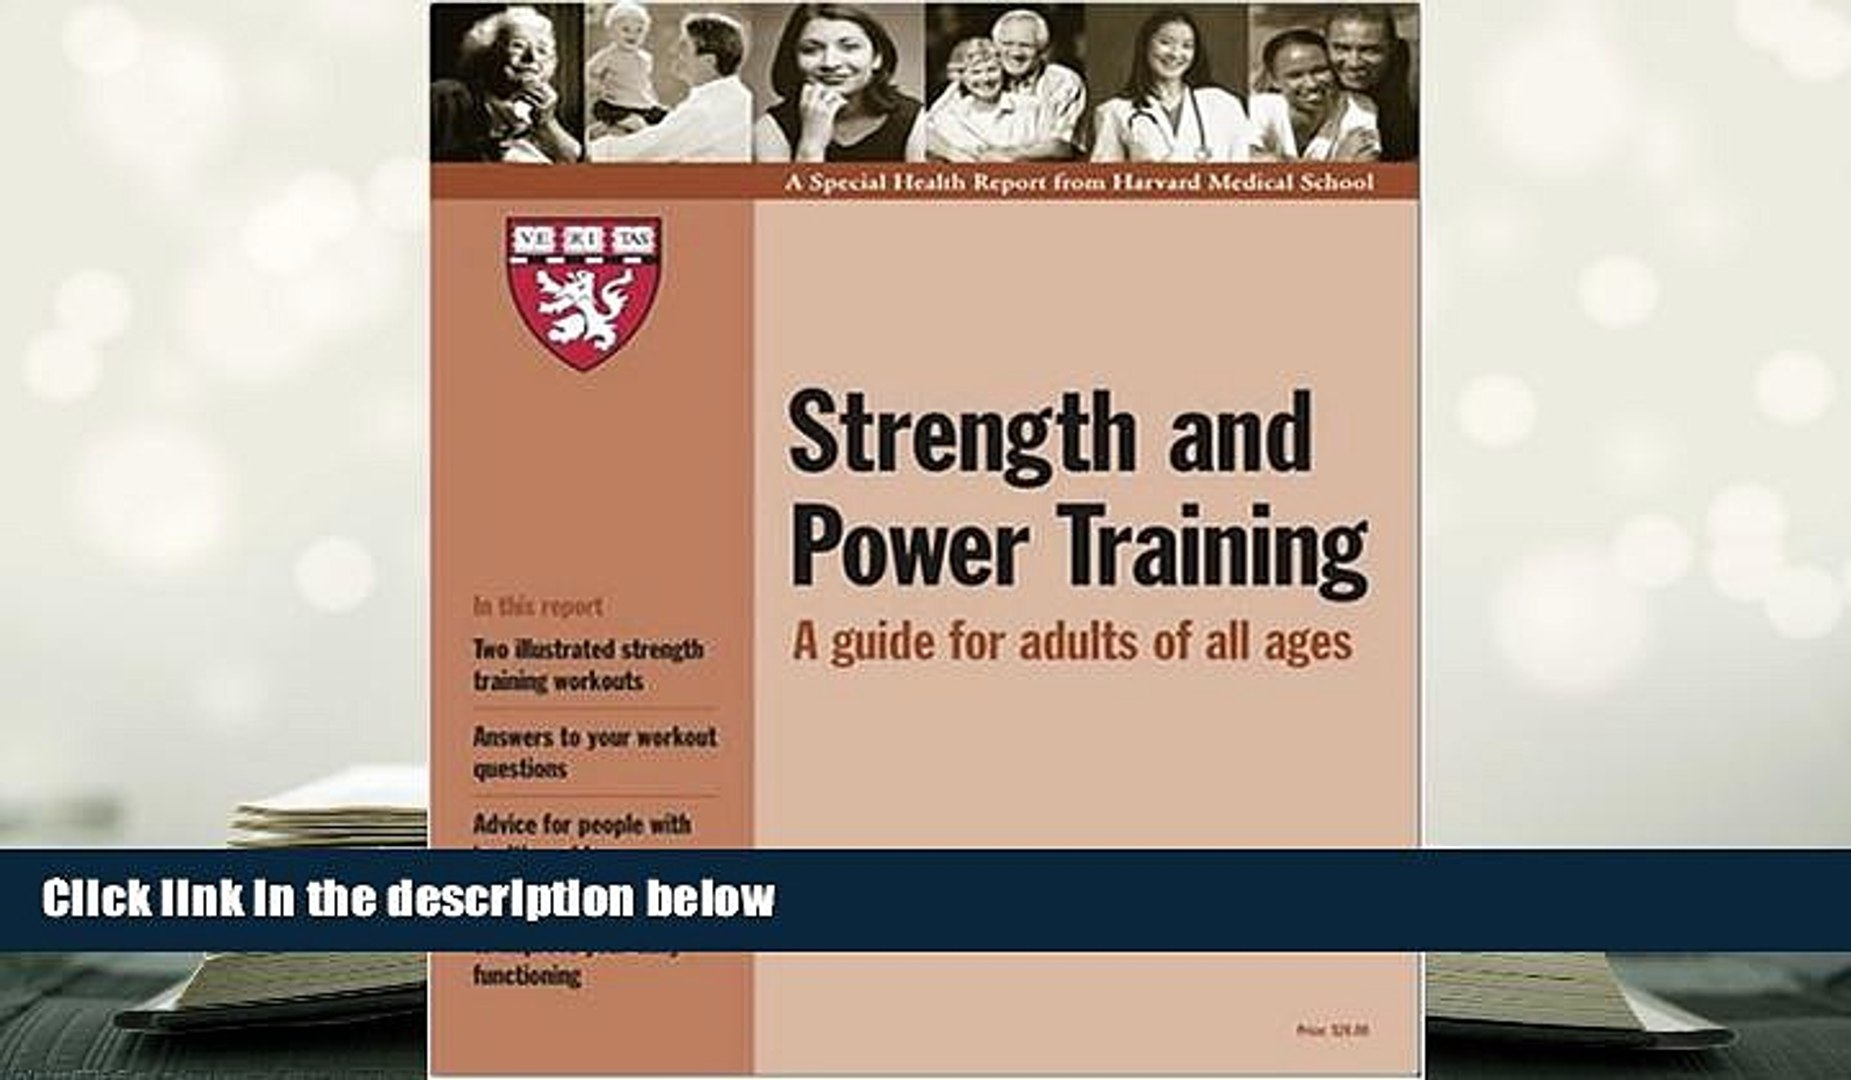 Harvard Medical School Strength and Power Training: A Guide for Adults of All Ages